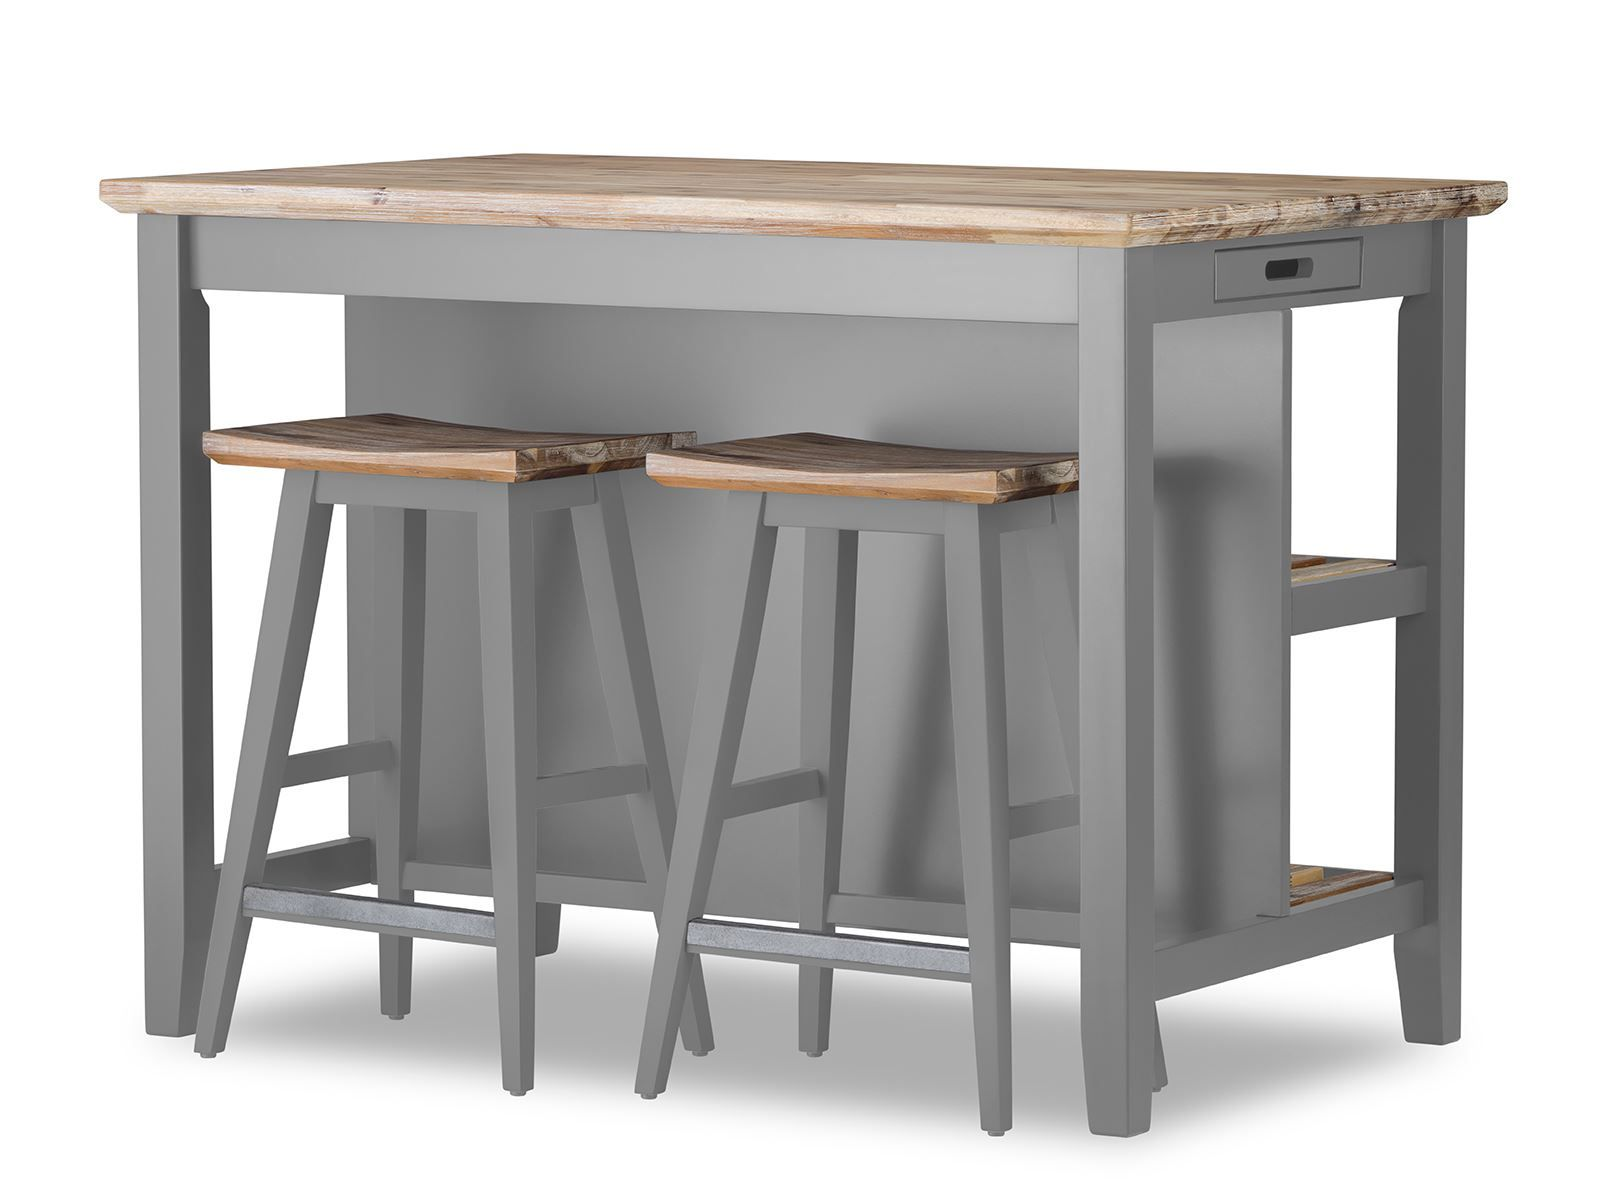 Details About Florence Breakfast Bar With 2 Large Shelves